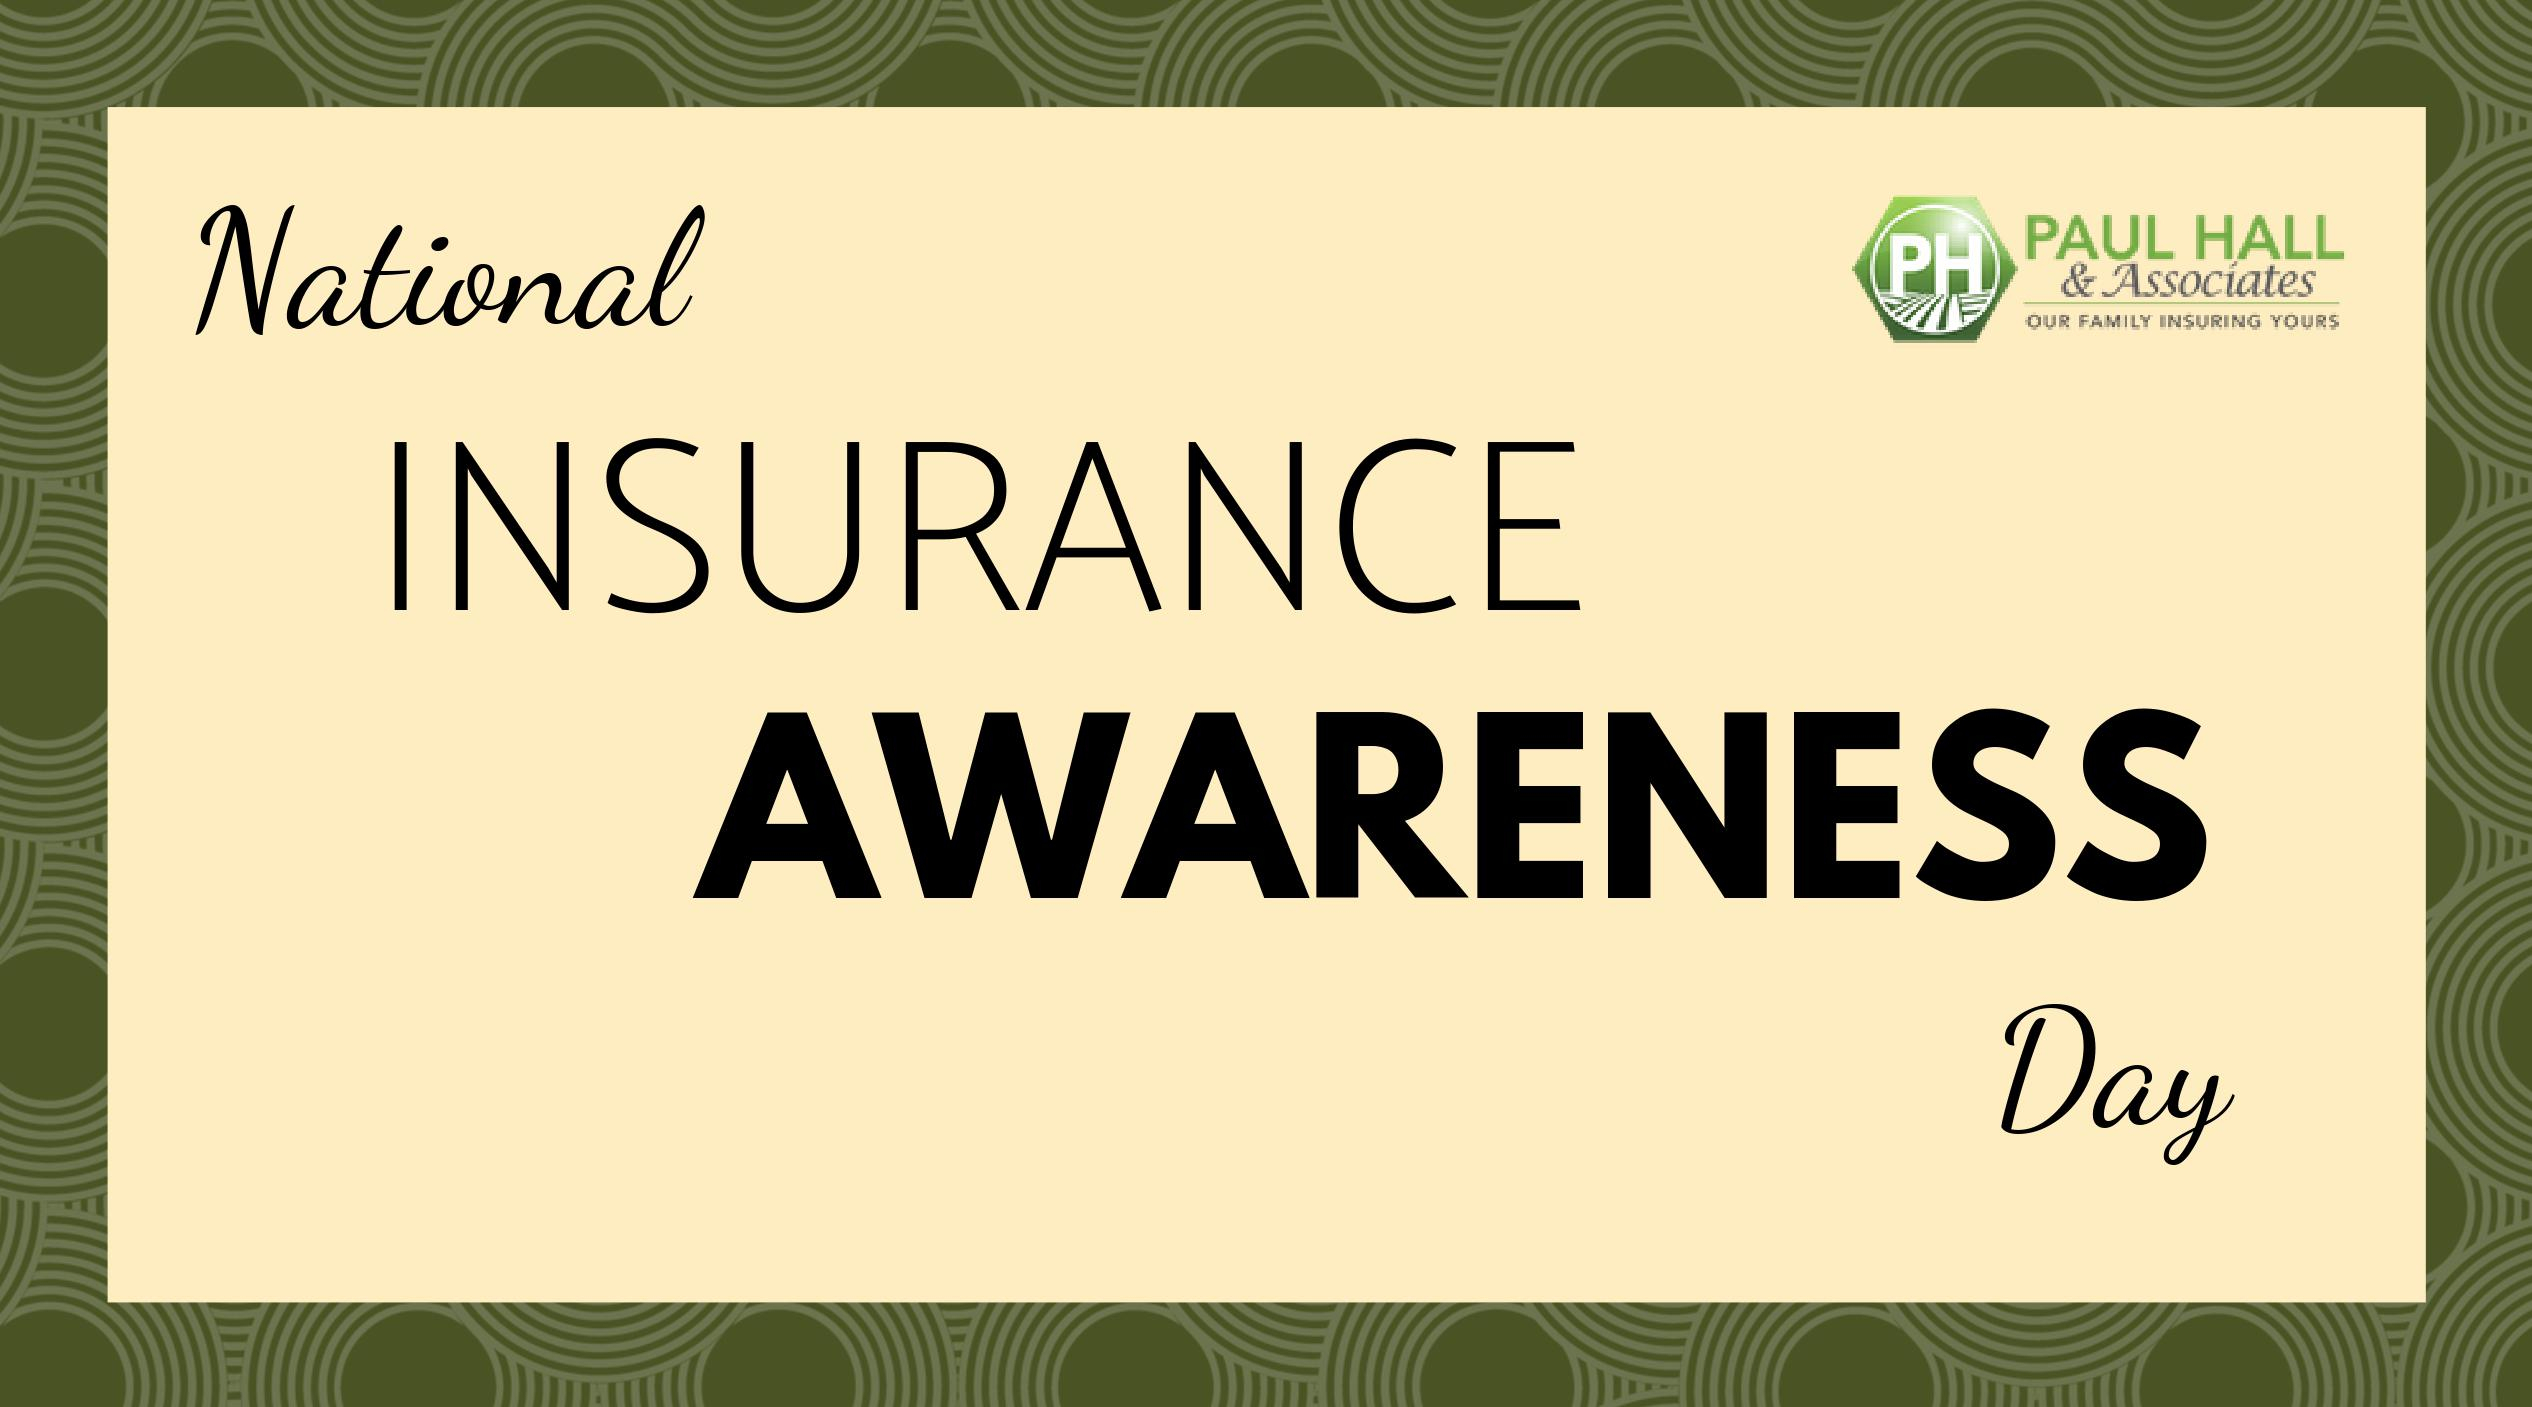 Fun Insurance Facts For National Insurance Awareness Day!